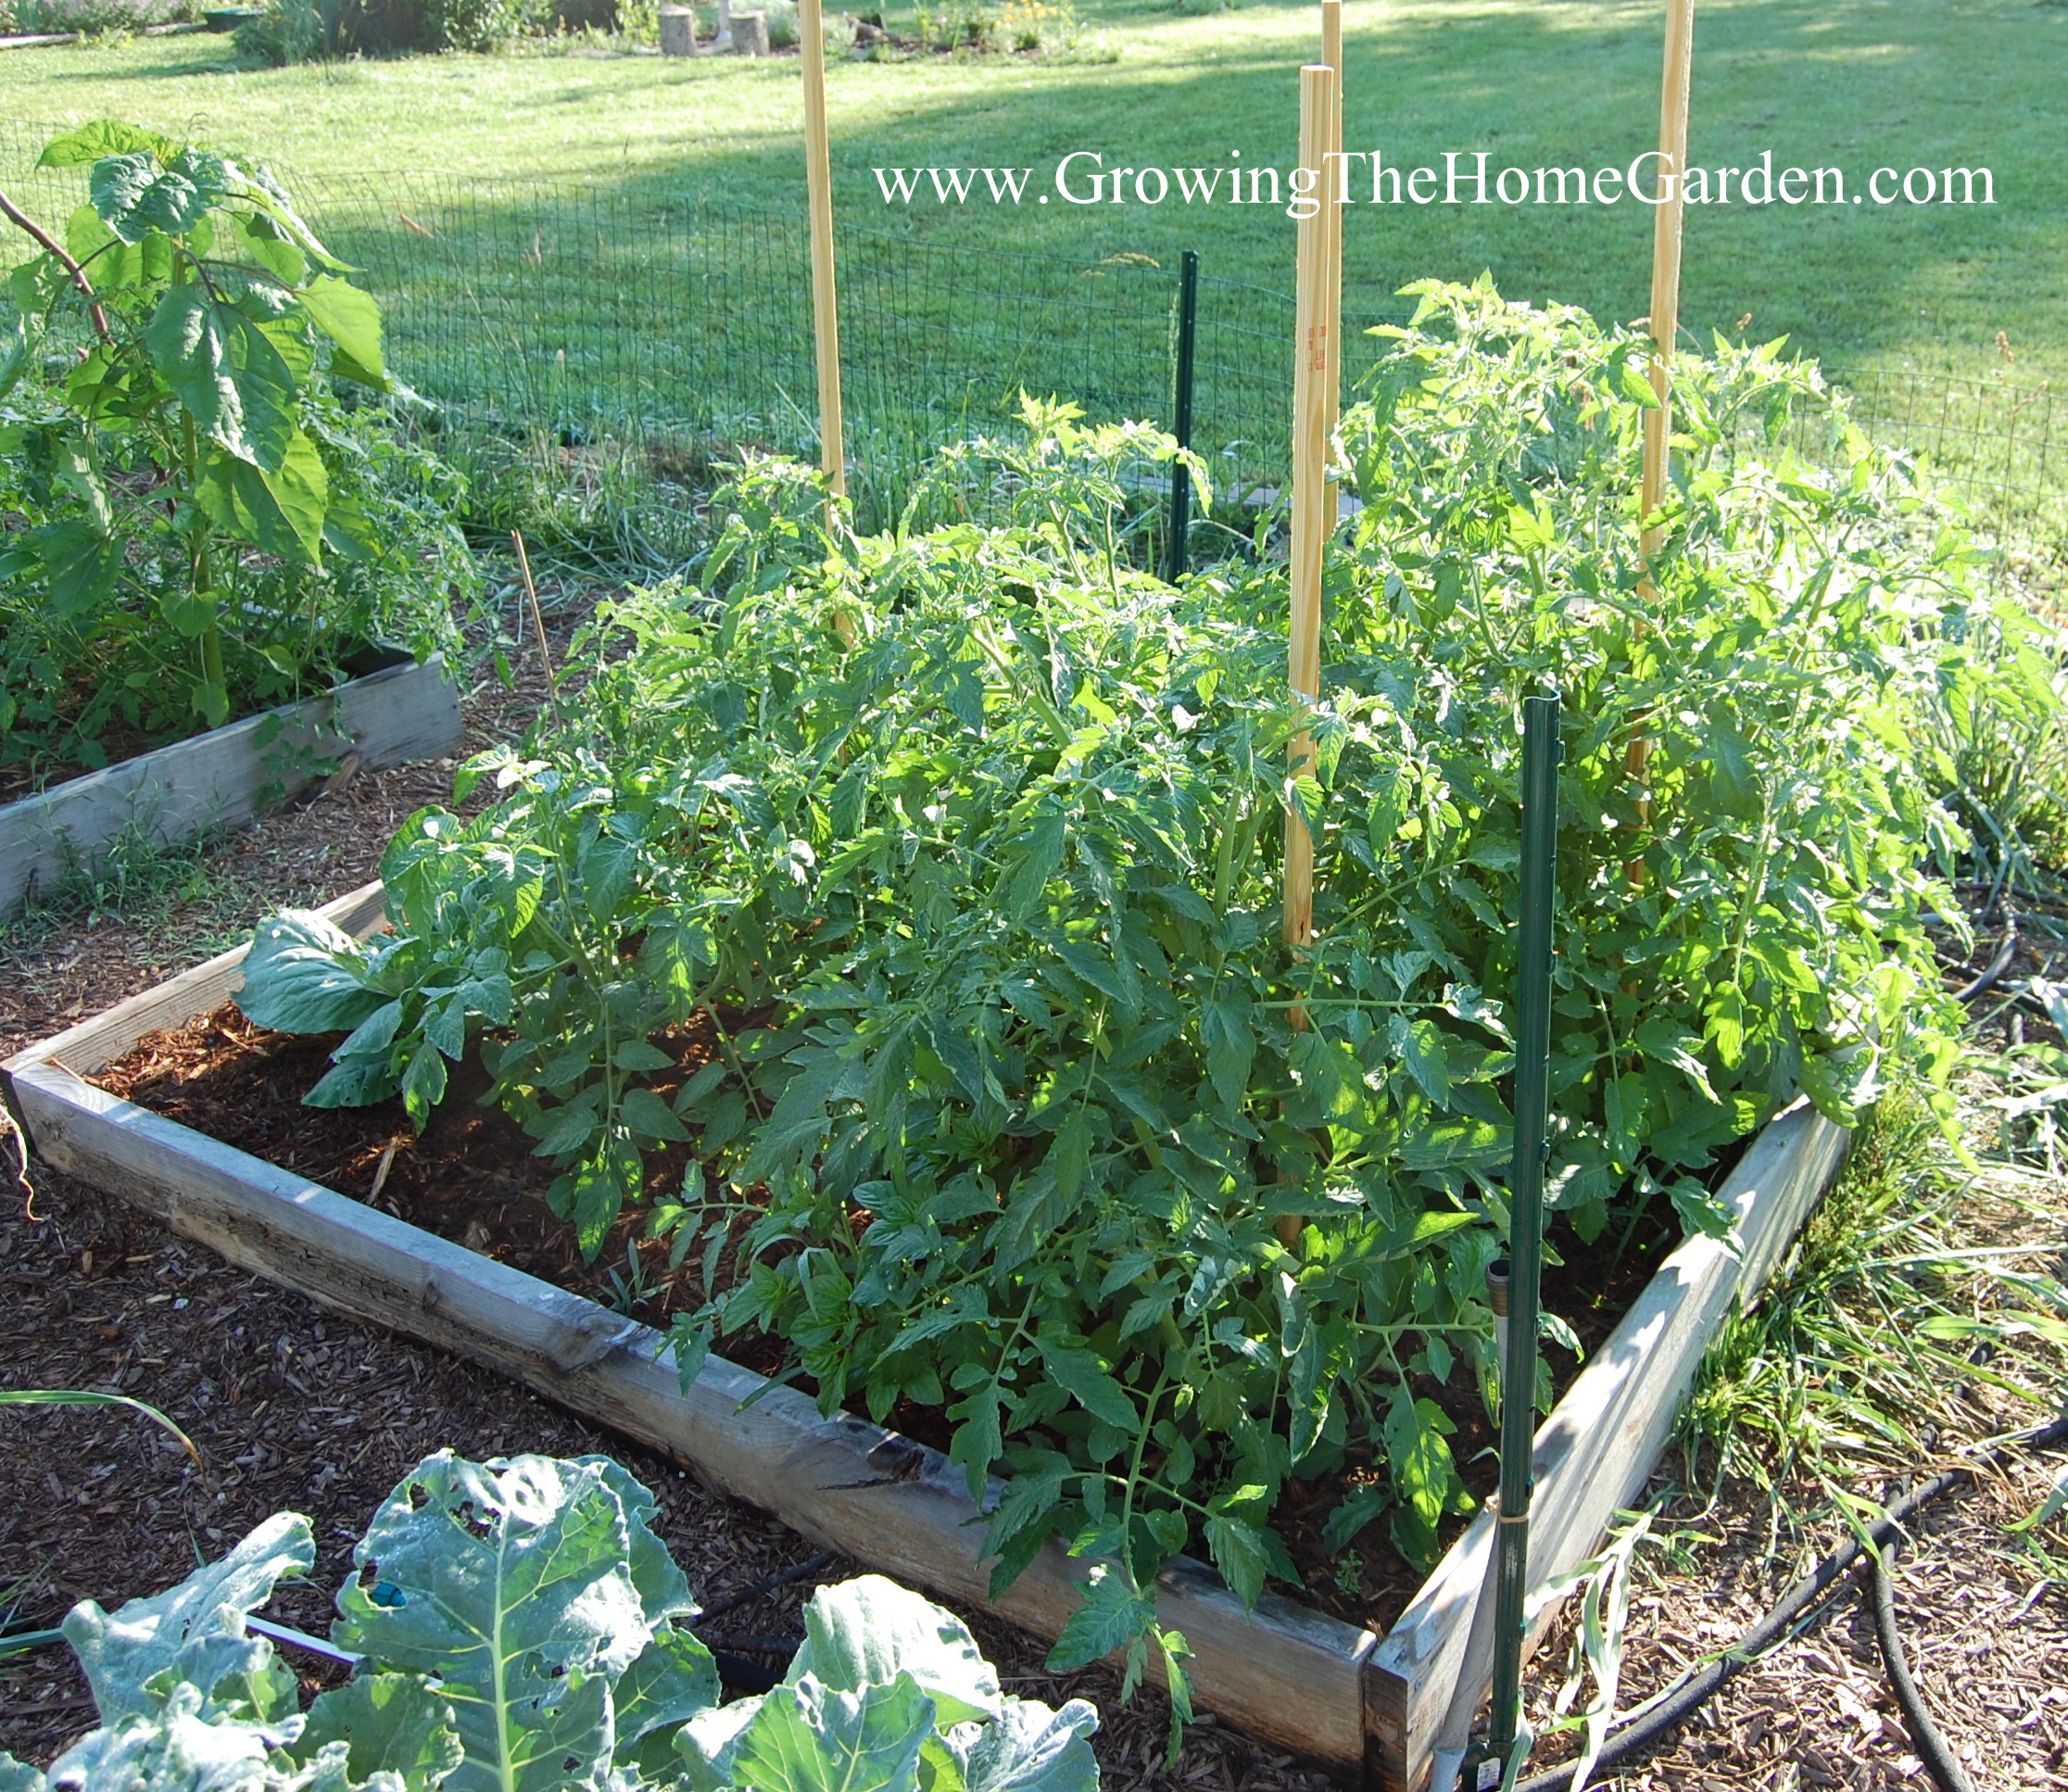 11 tips for designing a raised bed vegetable garden layout for Raised bed garden layout